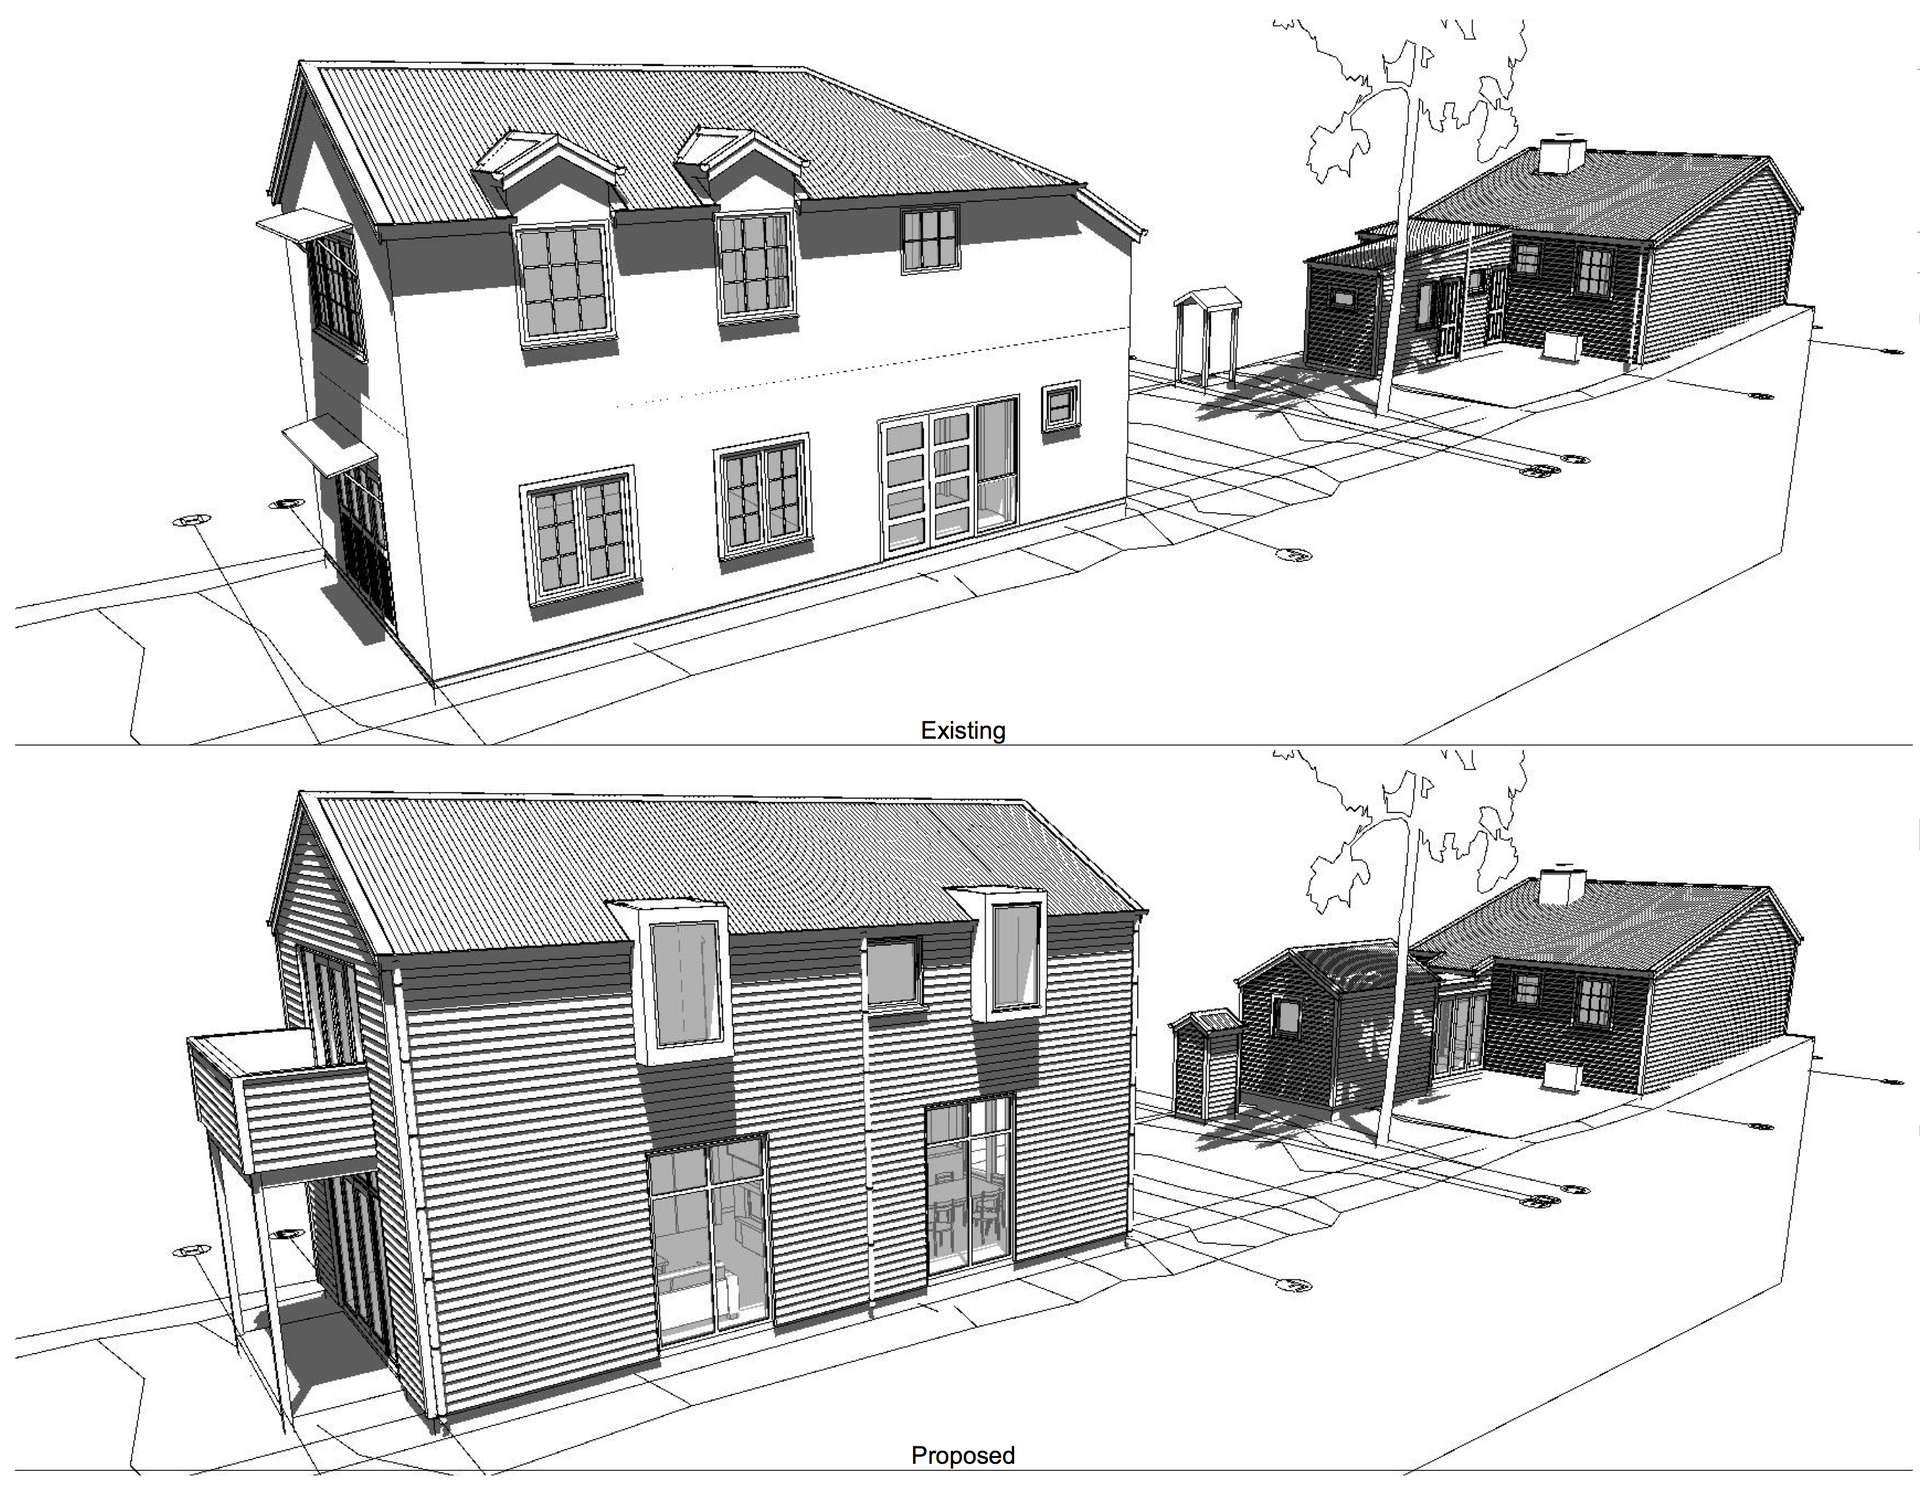 Arrowtown Cottage Existing Proposed 2